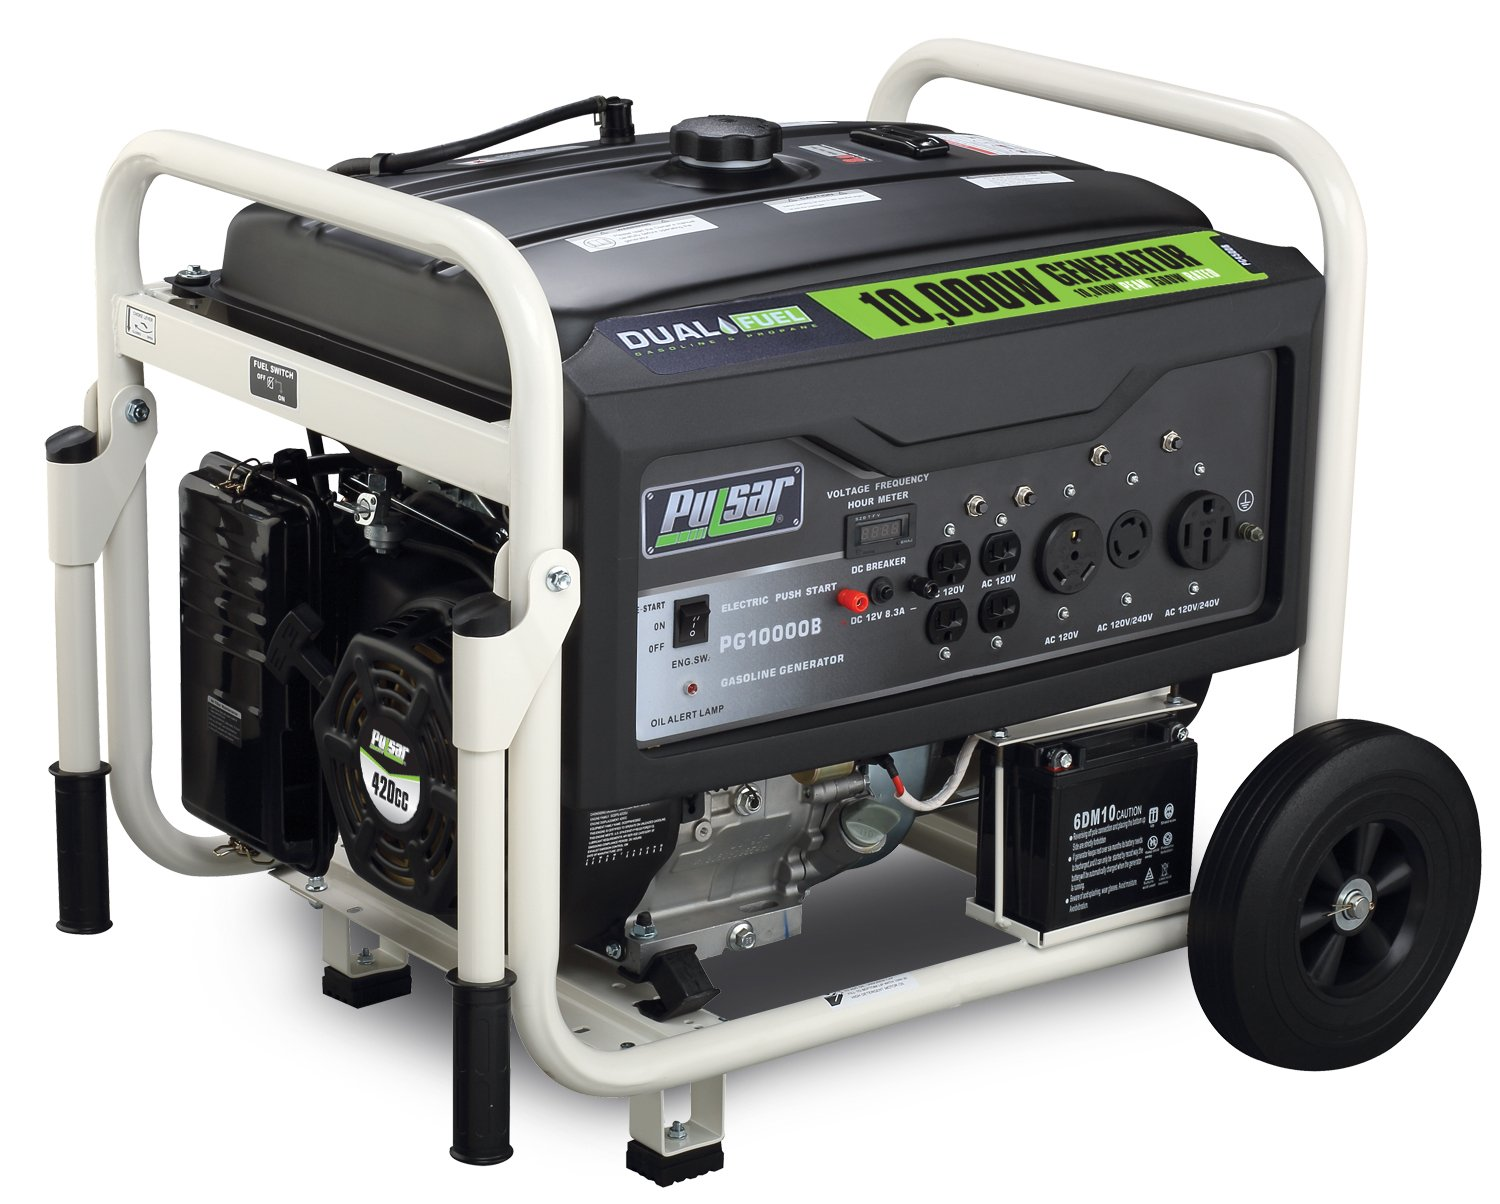 Top 10 Best Propane Powered Generators 20182019 on Flipboard